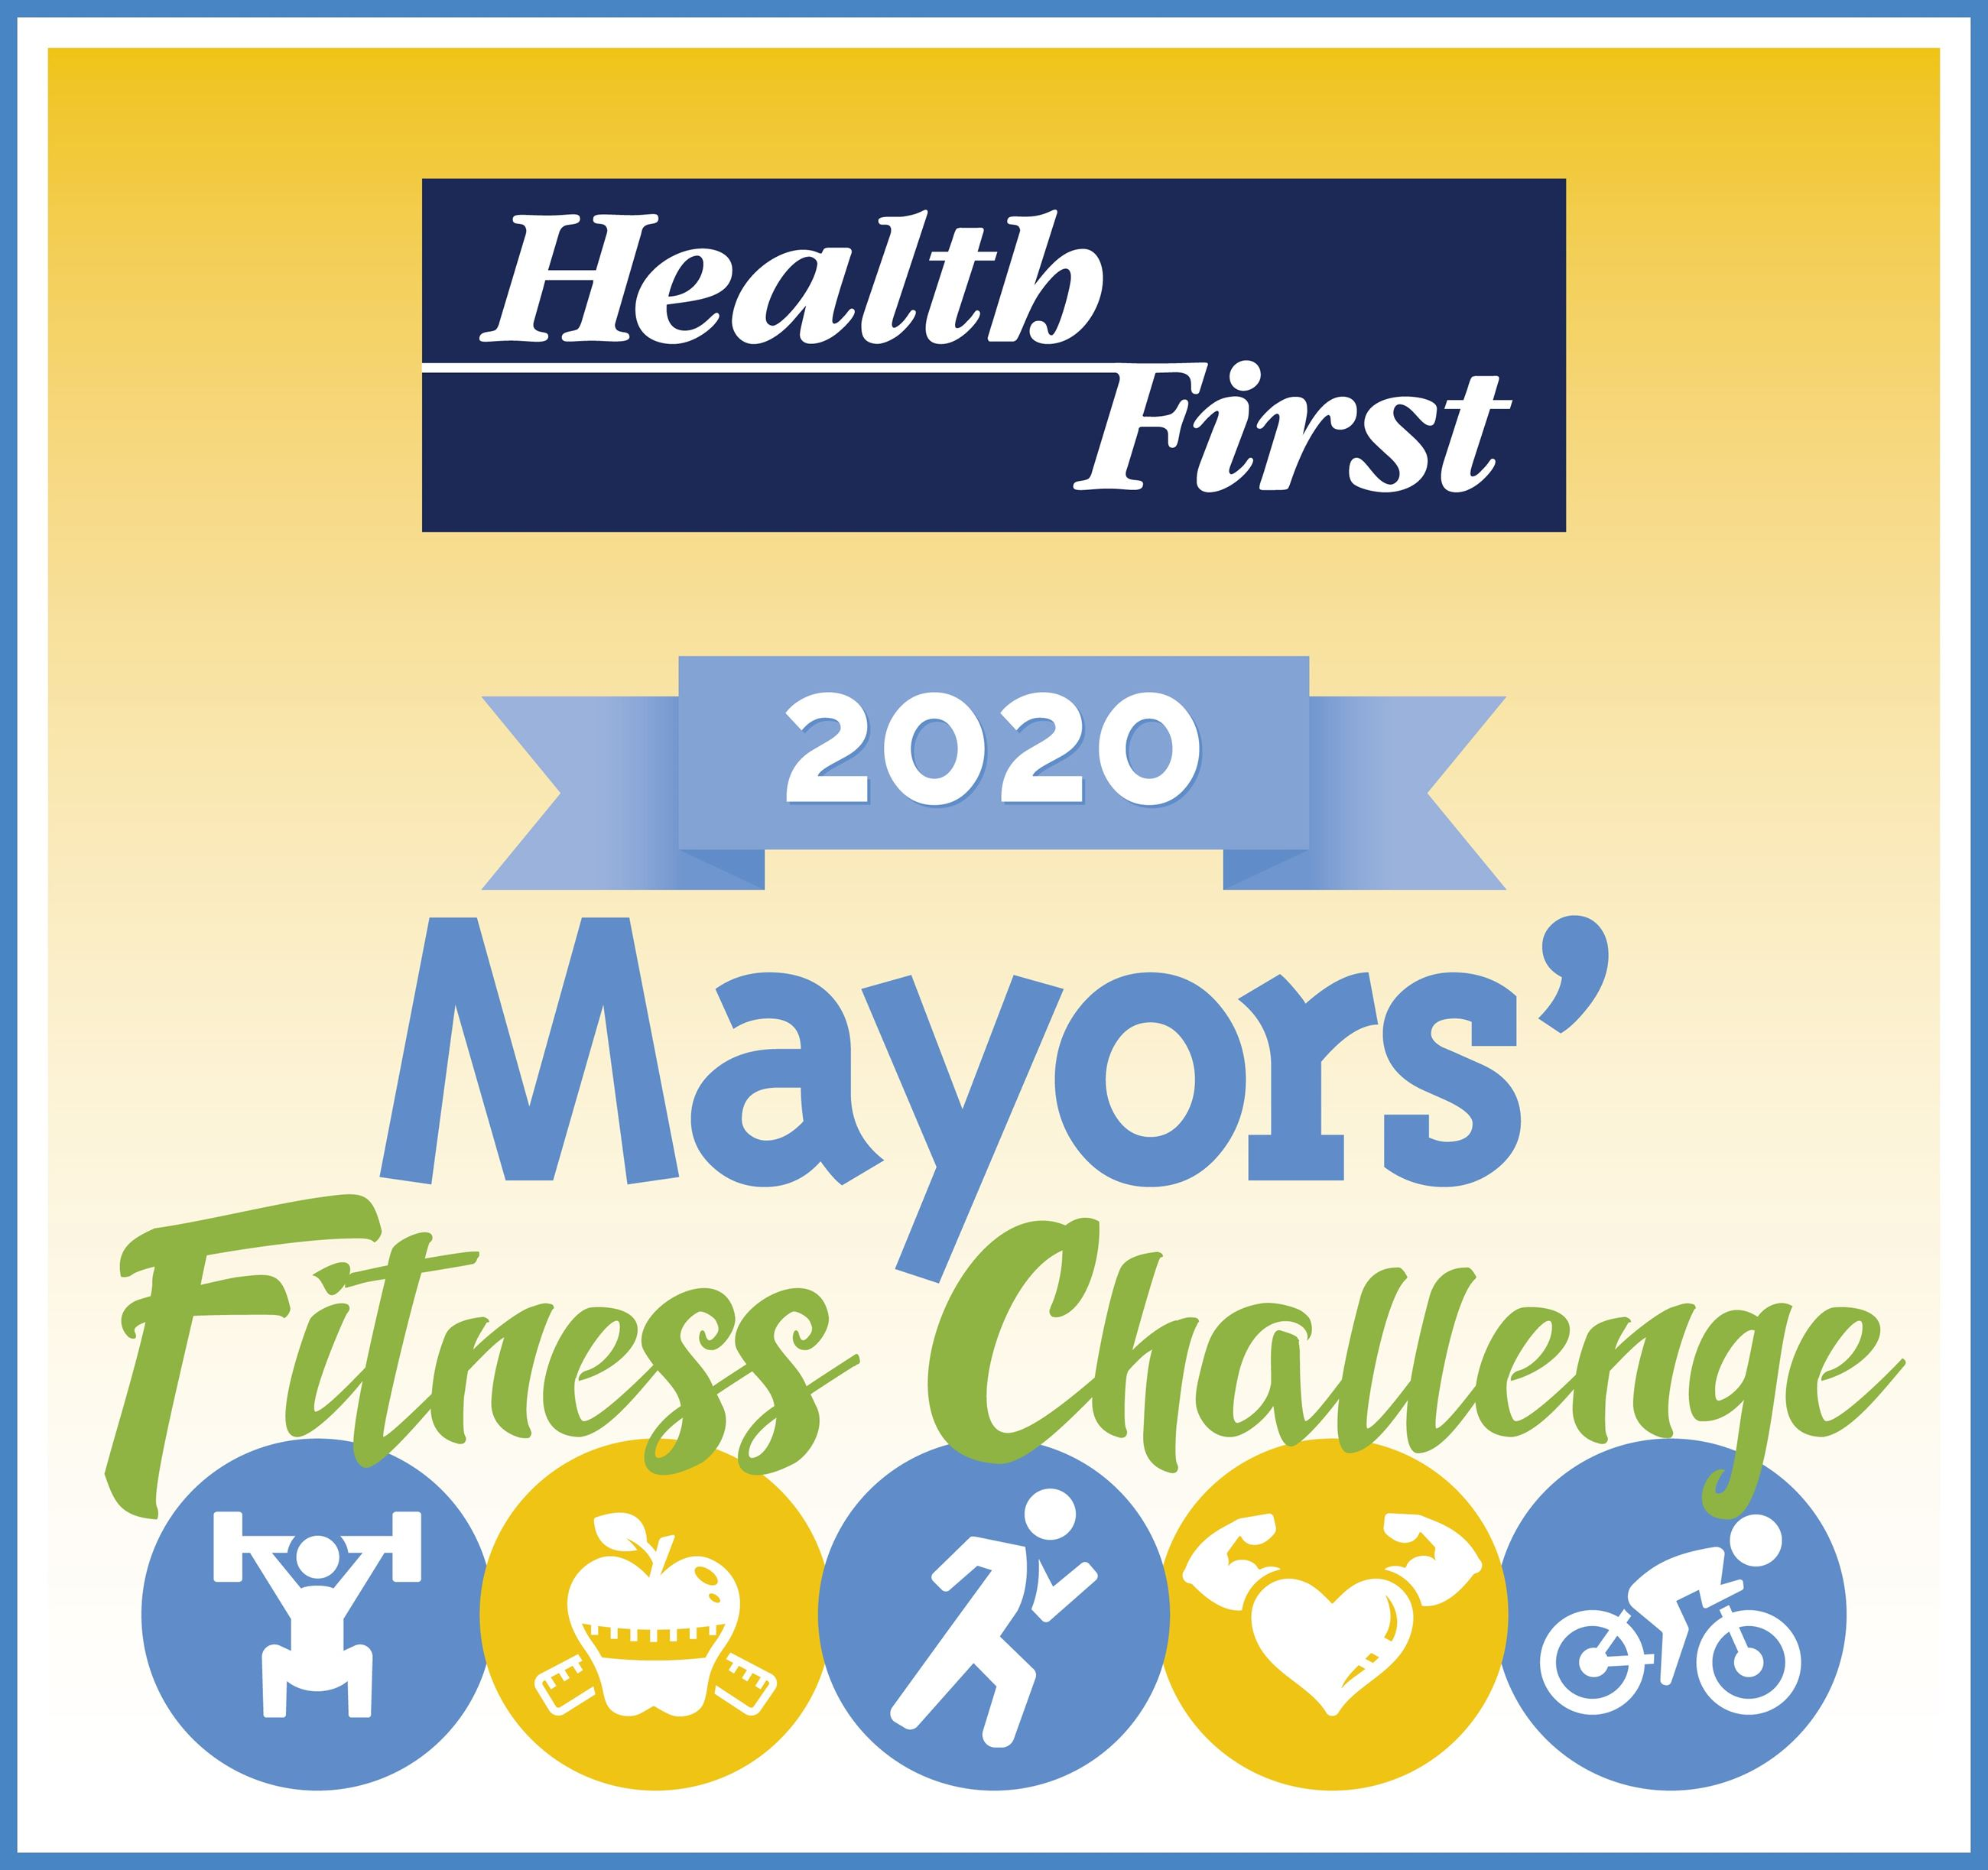 2020 Mayor's Fitness Challenge Flyer (information found on page)